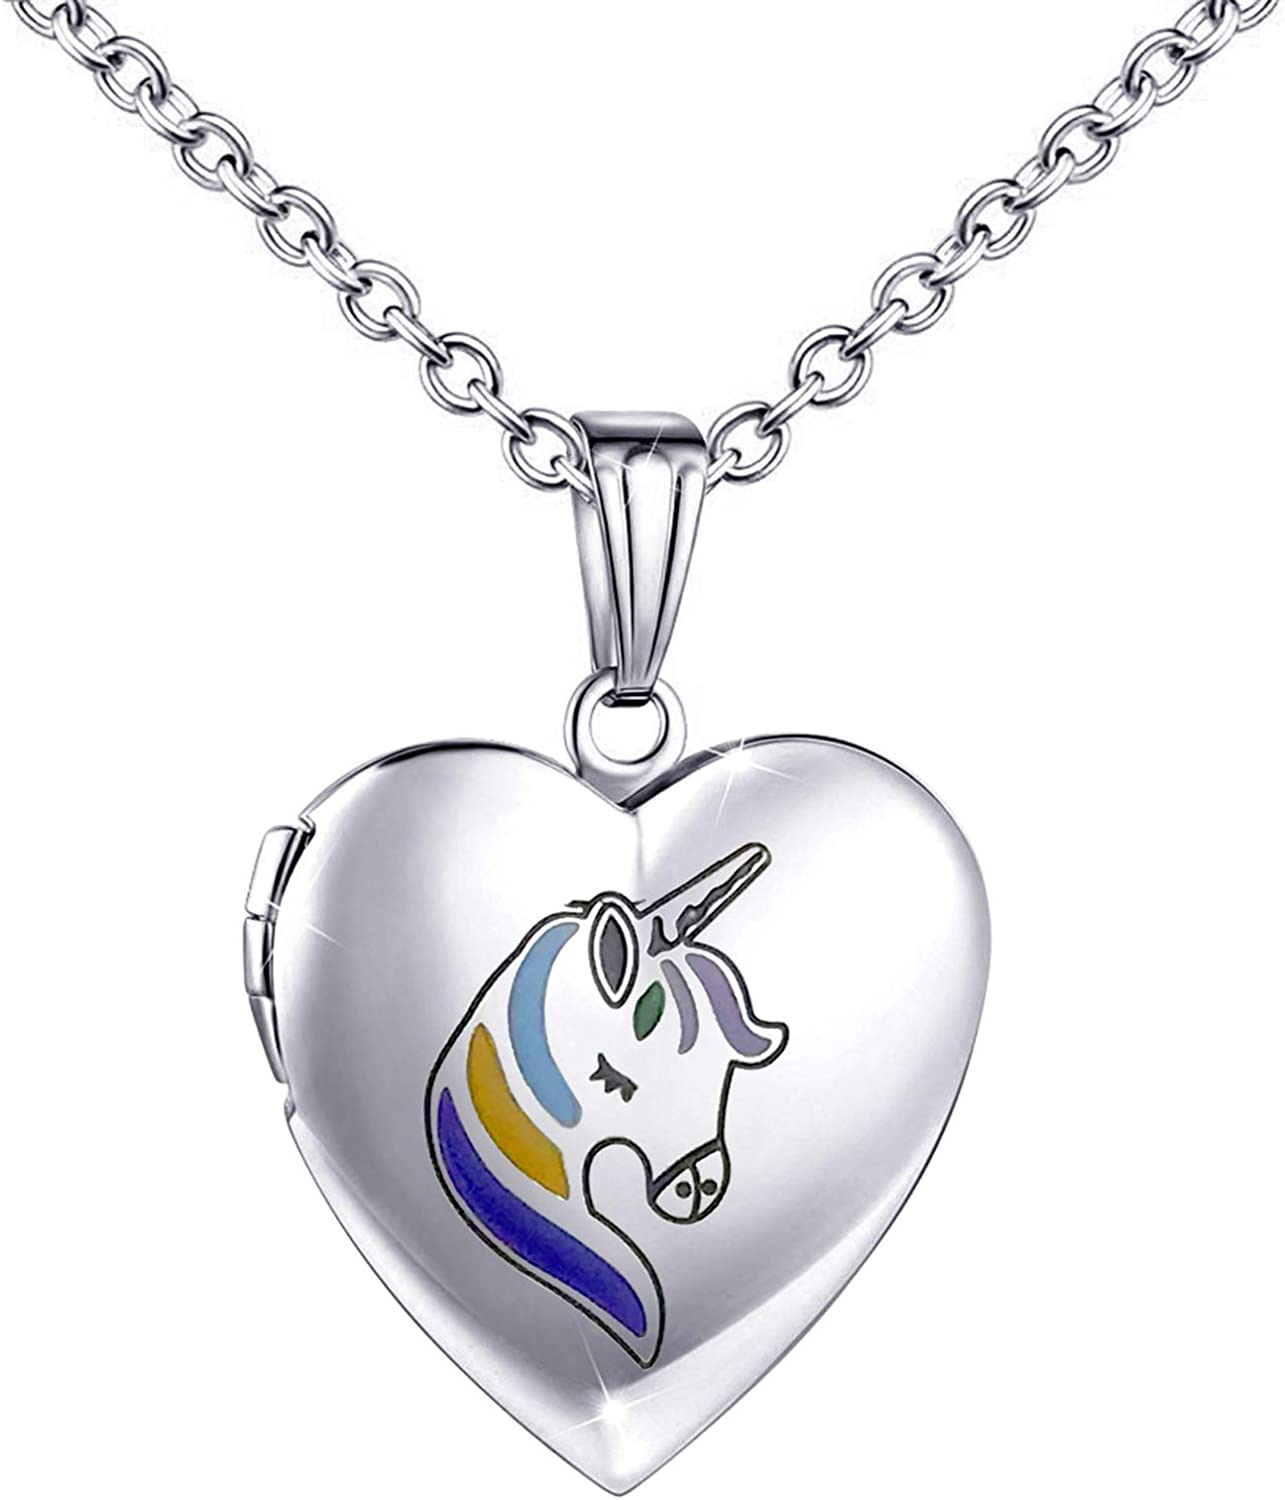 YOUFENG Unicorns Gifts for Girls Love Heart Locket Necklace That Holds Pictures Enamel Locket Pendant Gifts for Women